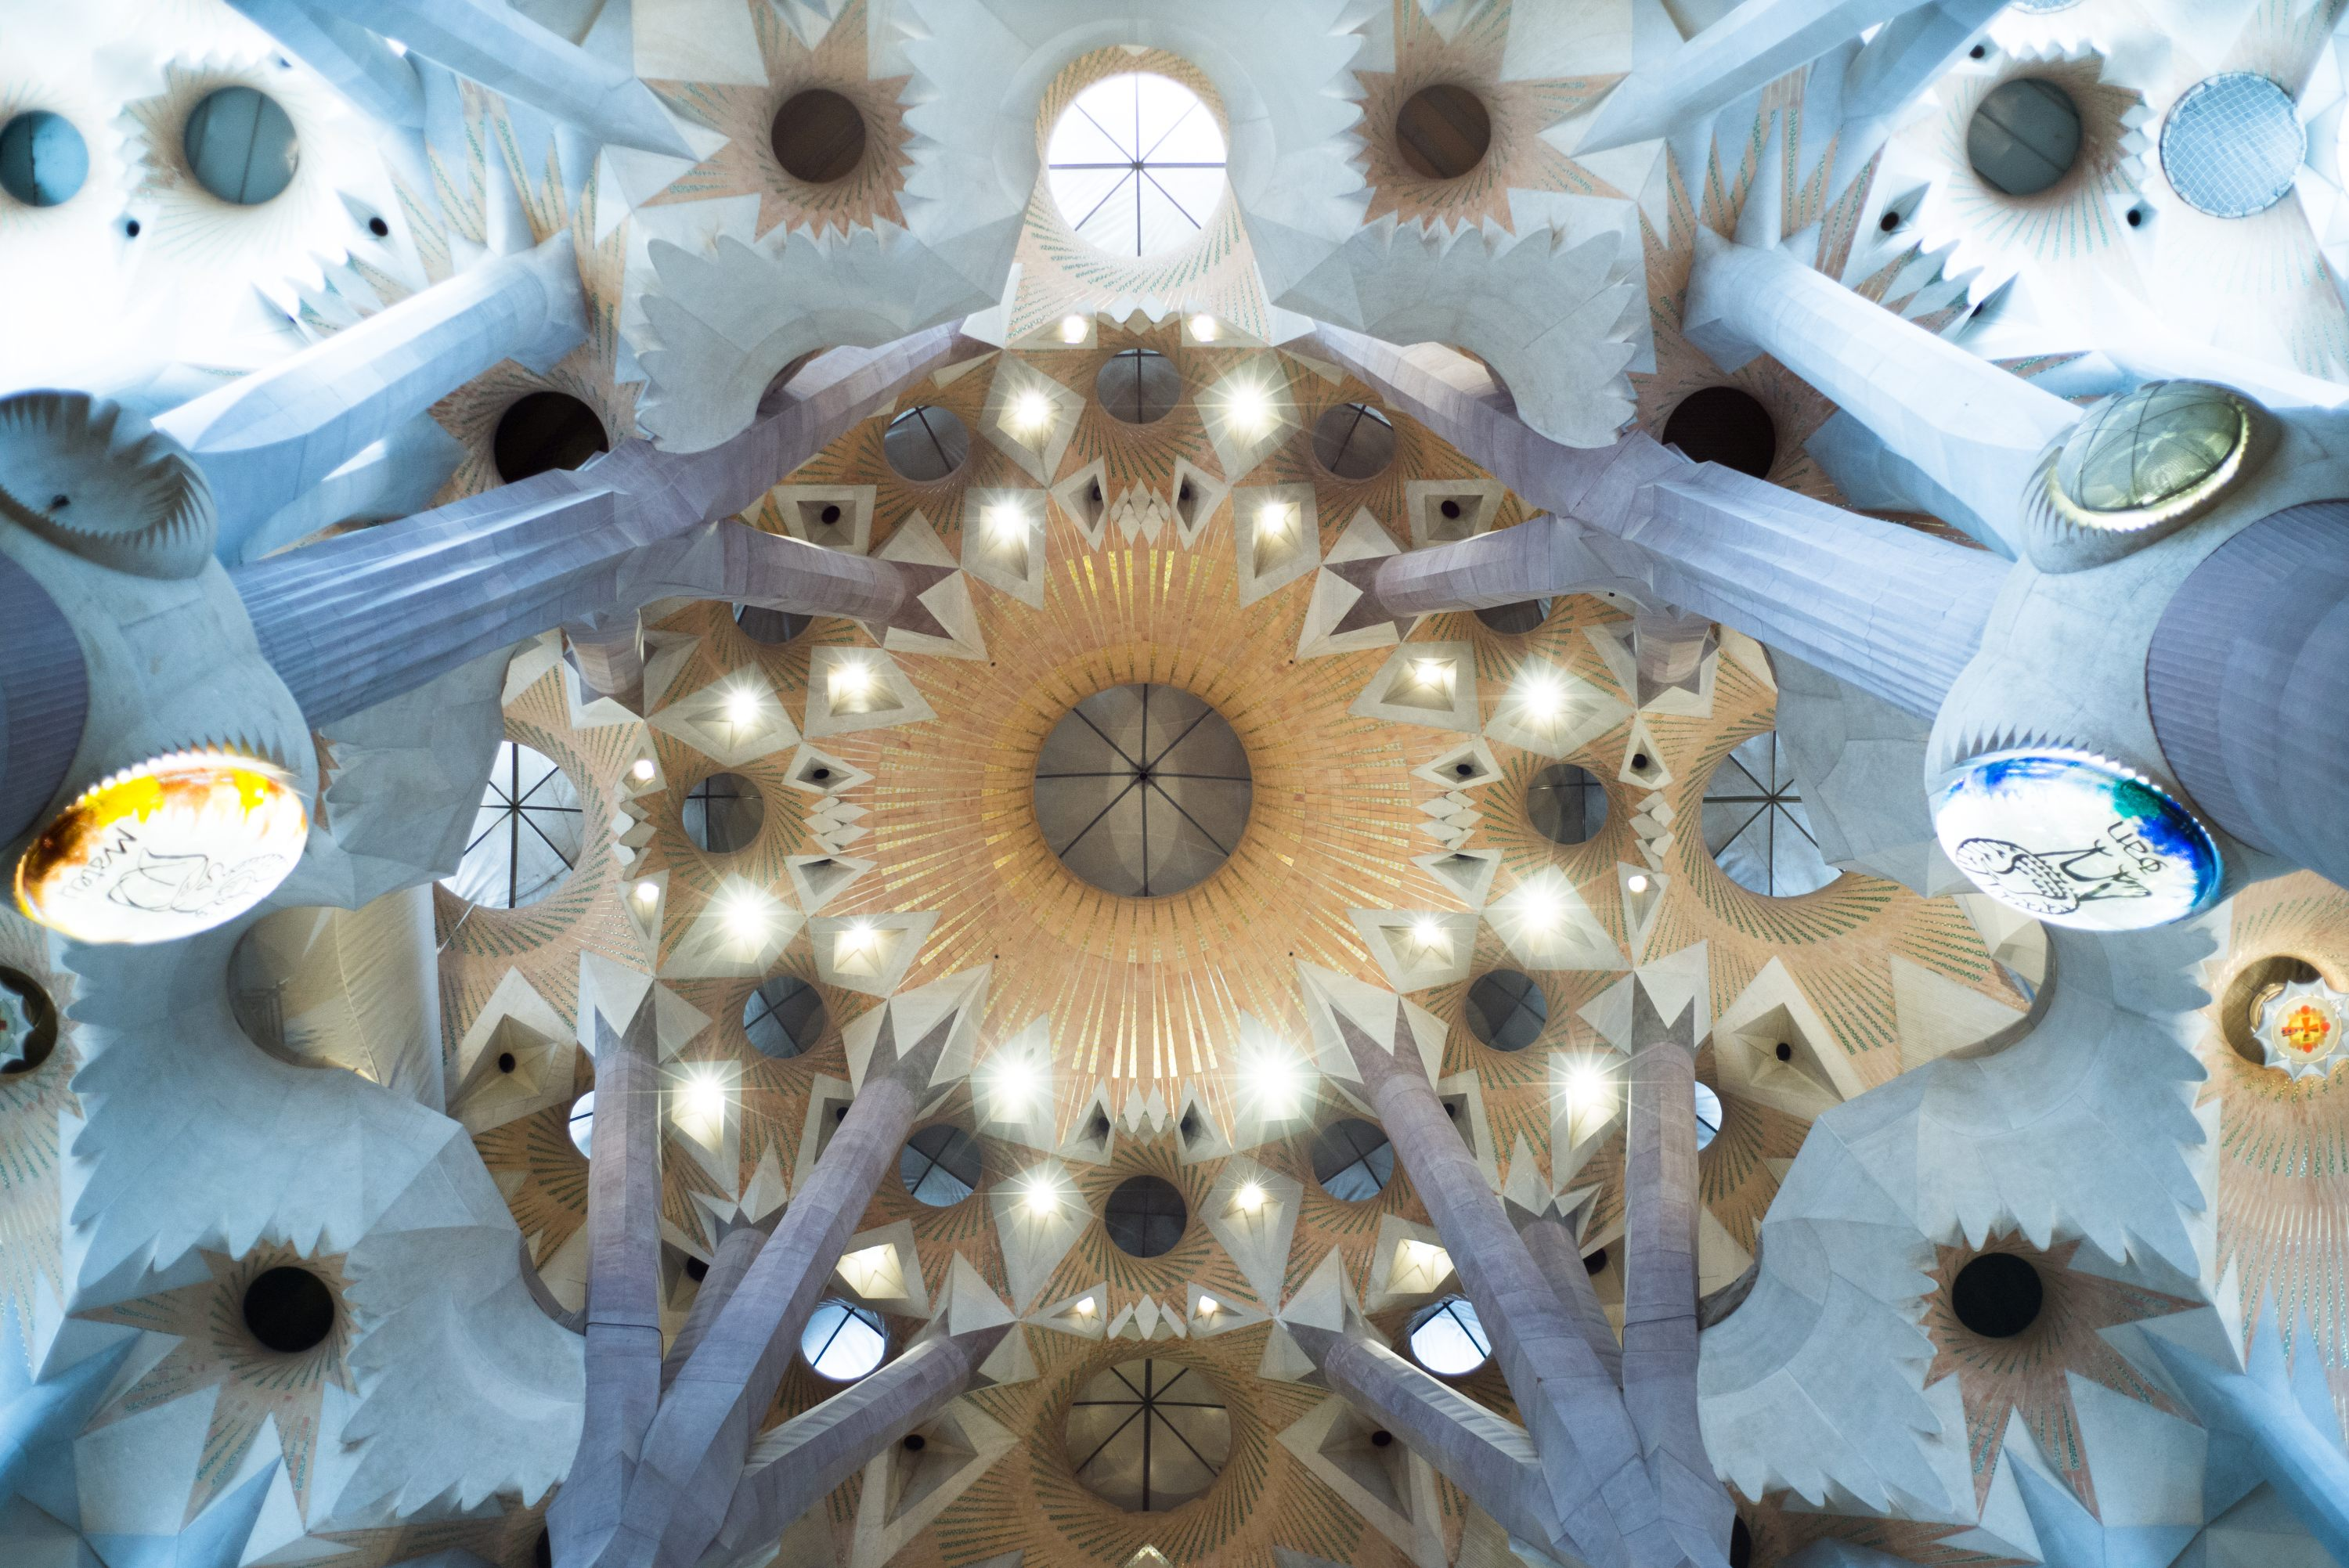 Inside of Sagrada Familia